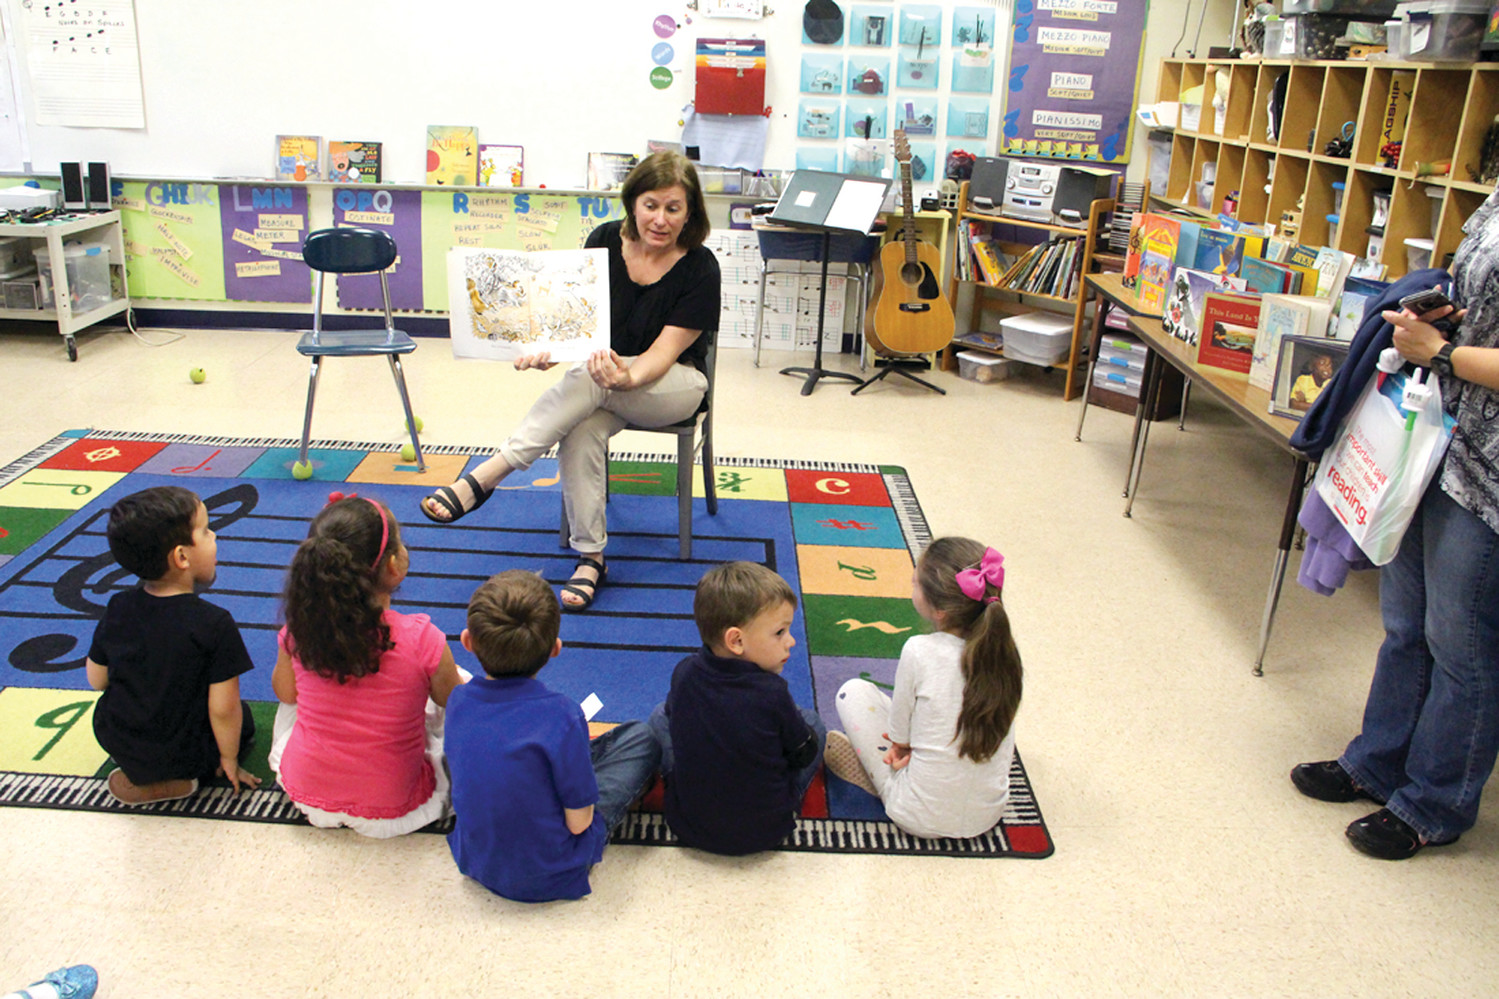 BOOKS PUT TO MUSIC: Teacher Tricia Kammerer read stories to students and their parents, putting the words to music.